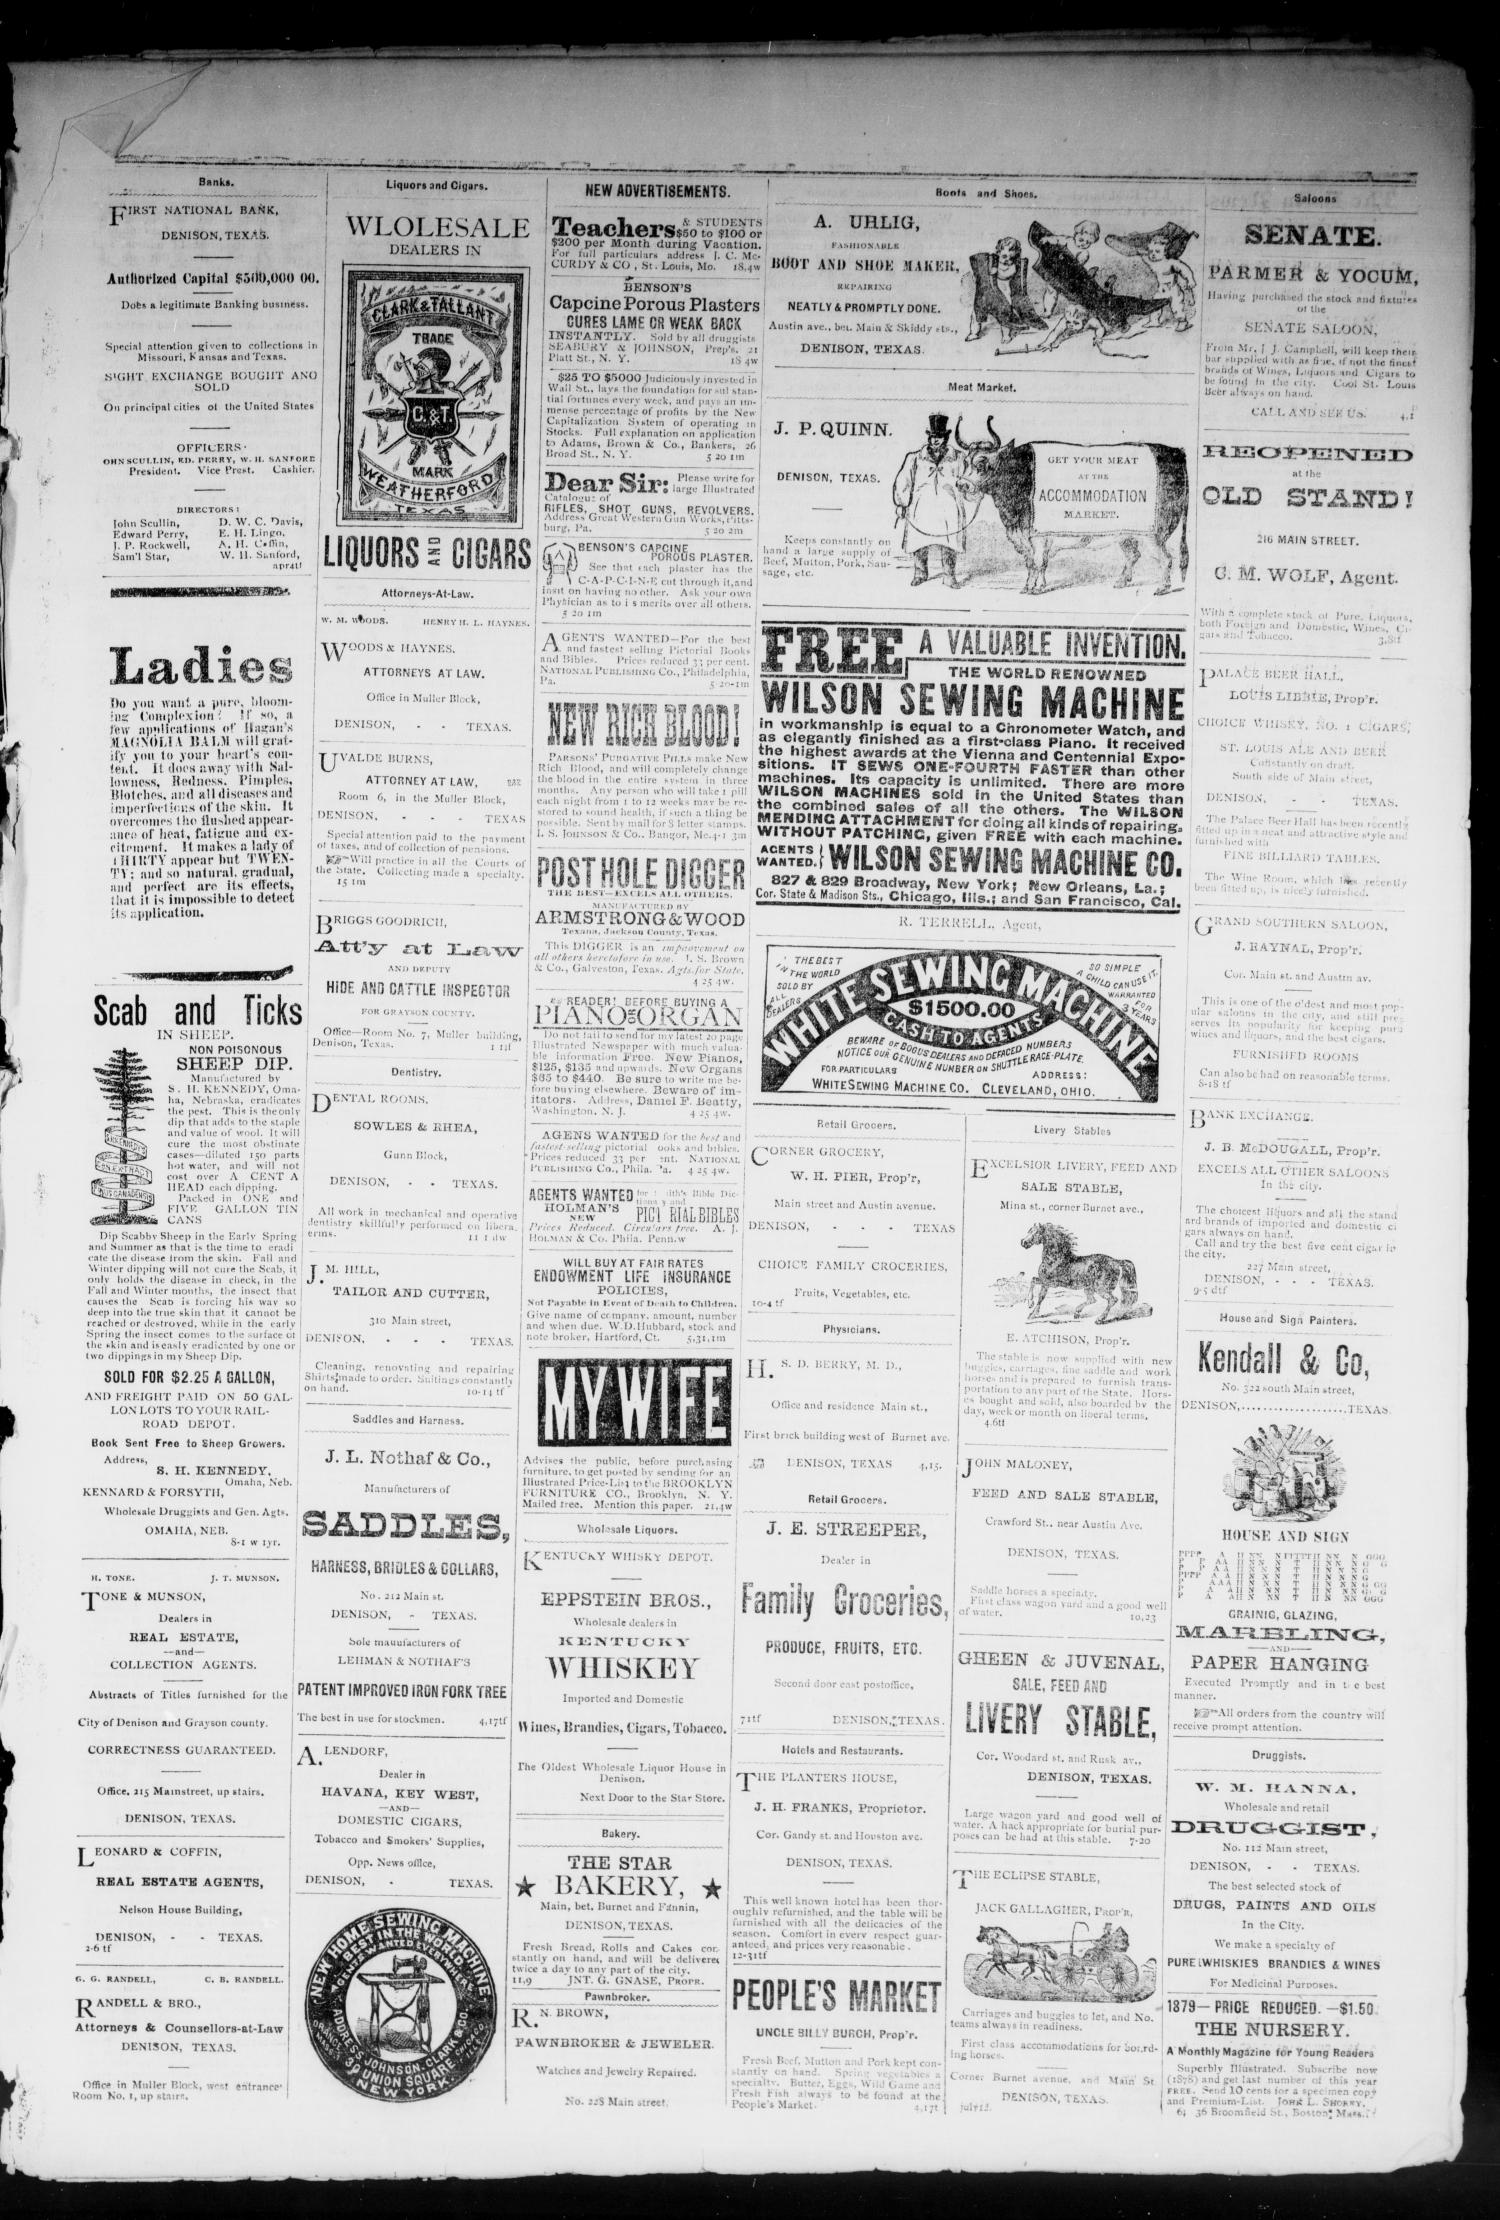 Denison Daily News. (Denison, Tex.), Vol. 7, No. 96, Ed. 1 Tuesday, June 24, 1879                                                                                                      [Sequence #]: 3 of 4